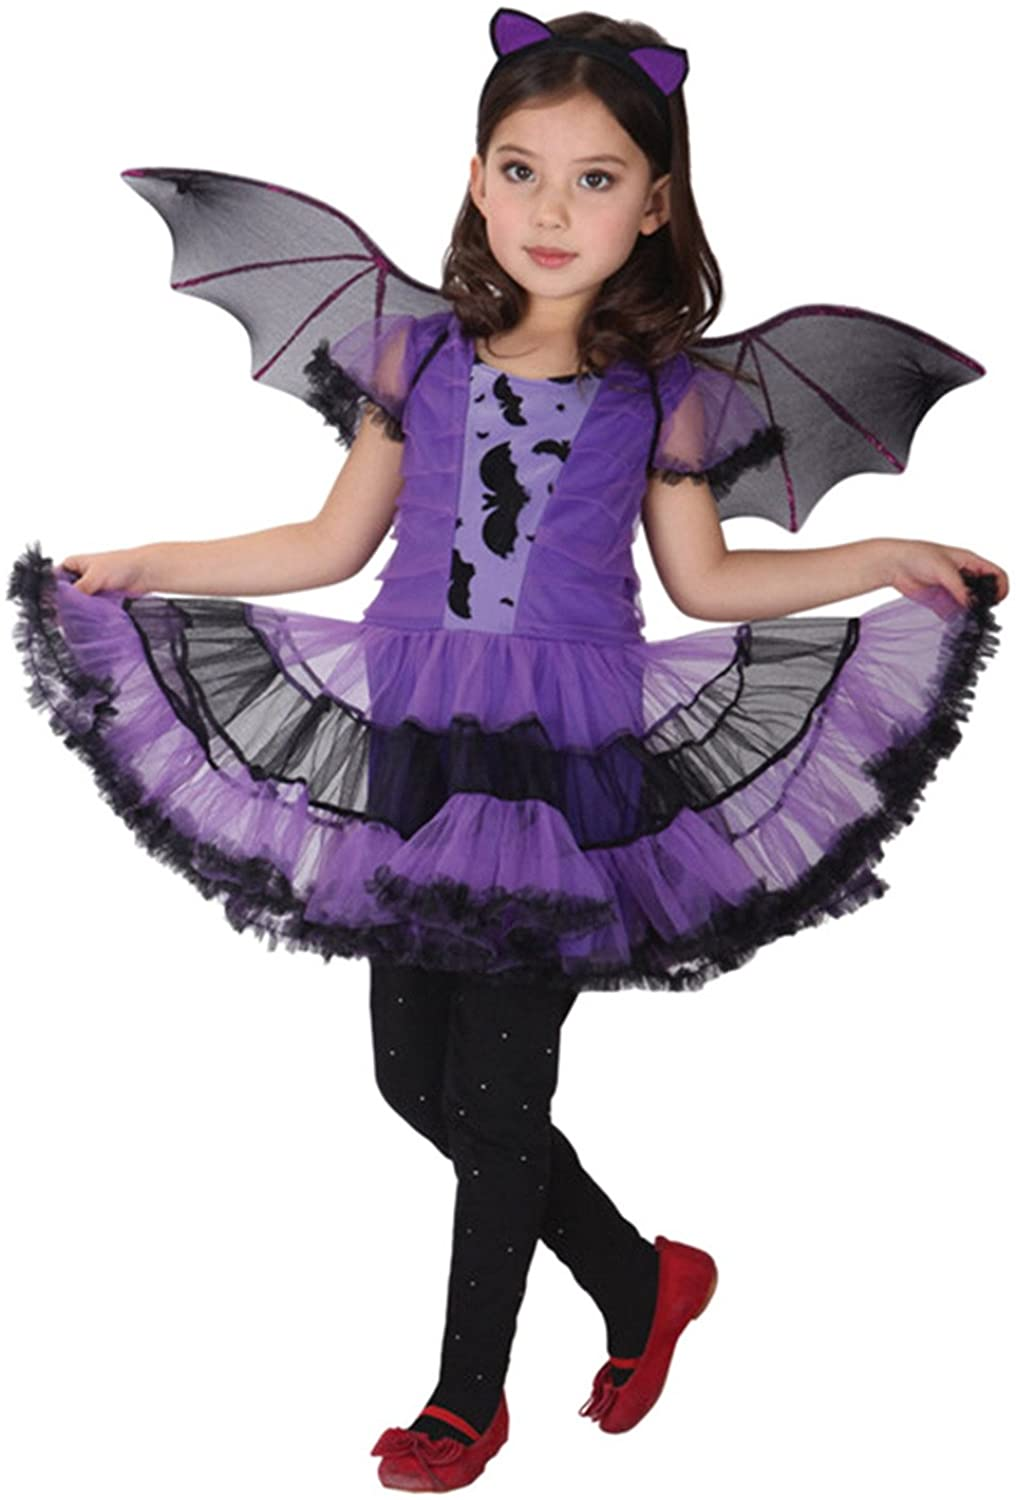 Jelord Girl Halloween Costume Cosplay Outfits Tutu Dress with Wing Headband